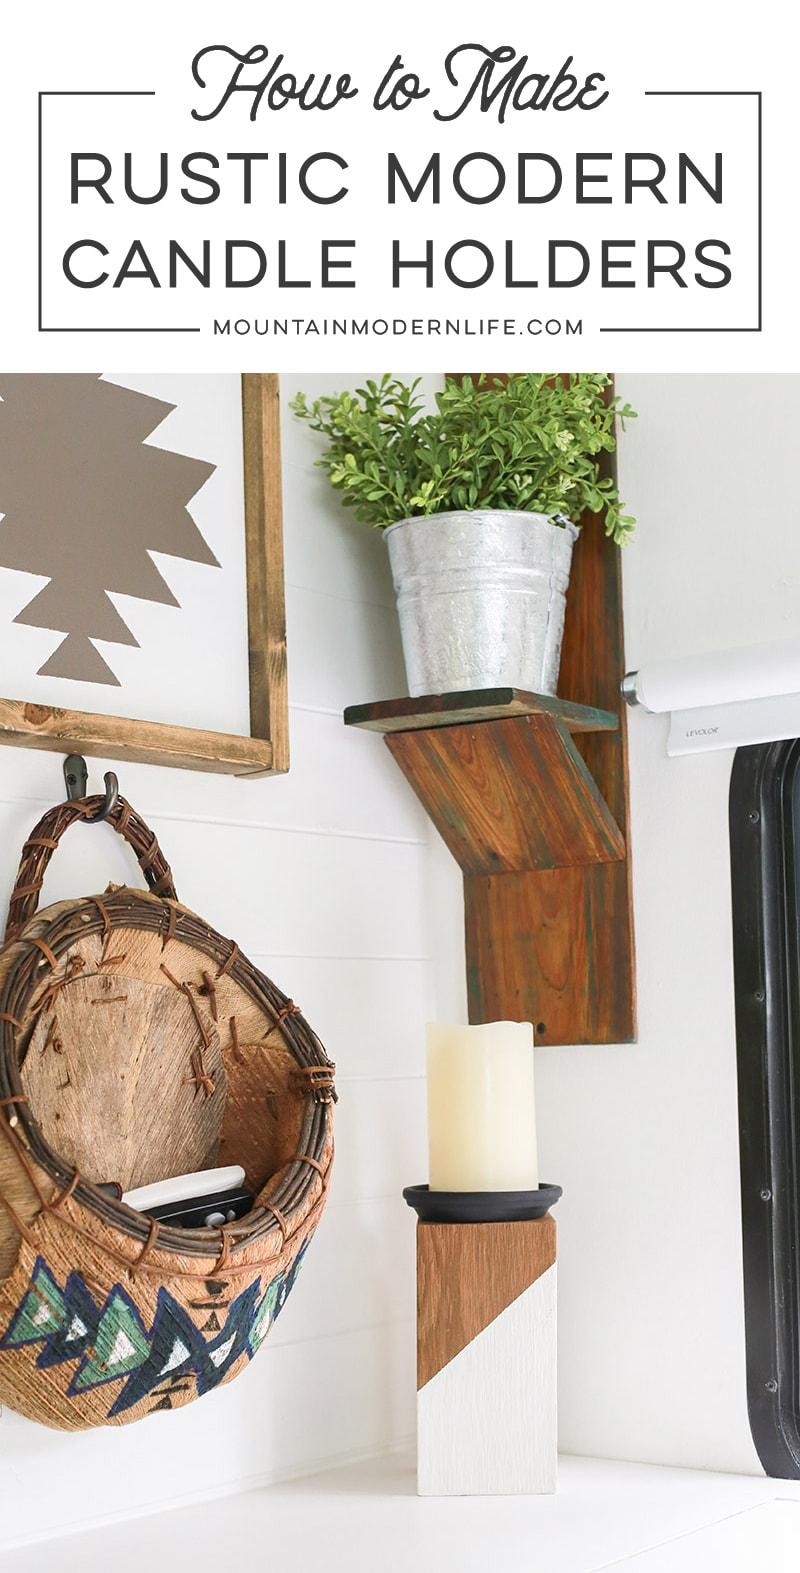 How to Make Rustic Modern Candle Holders | MountainModernLife.com